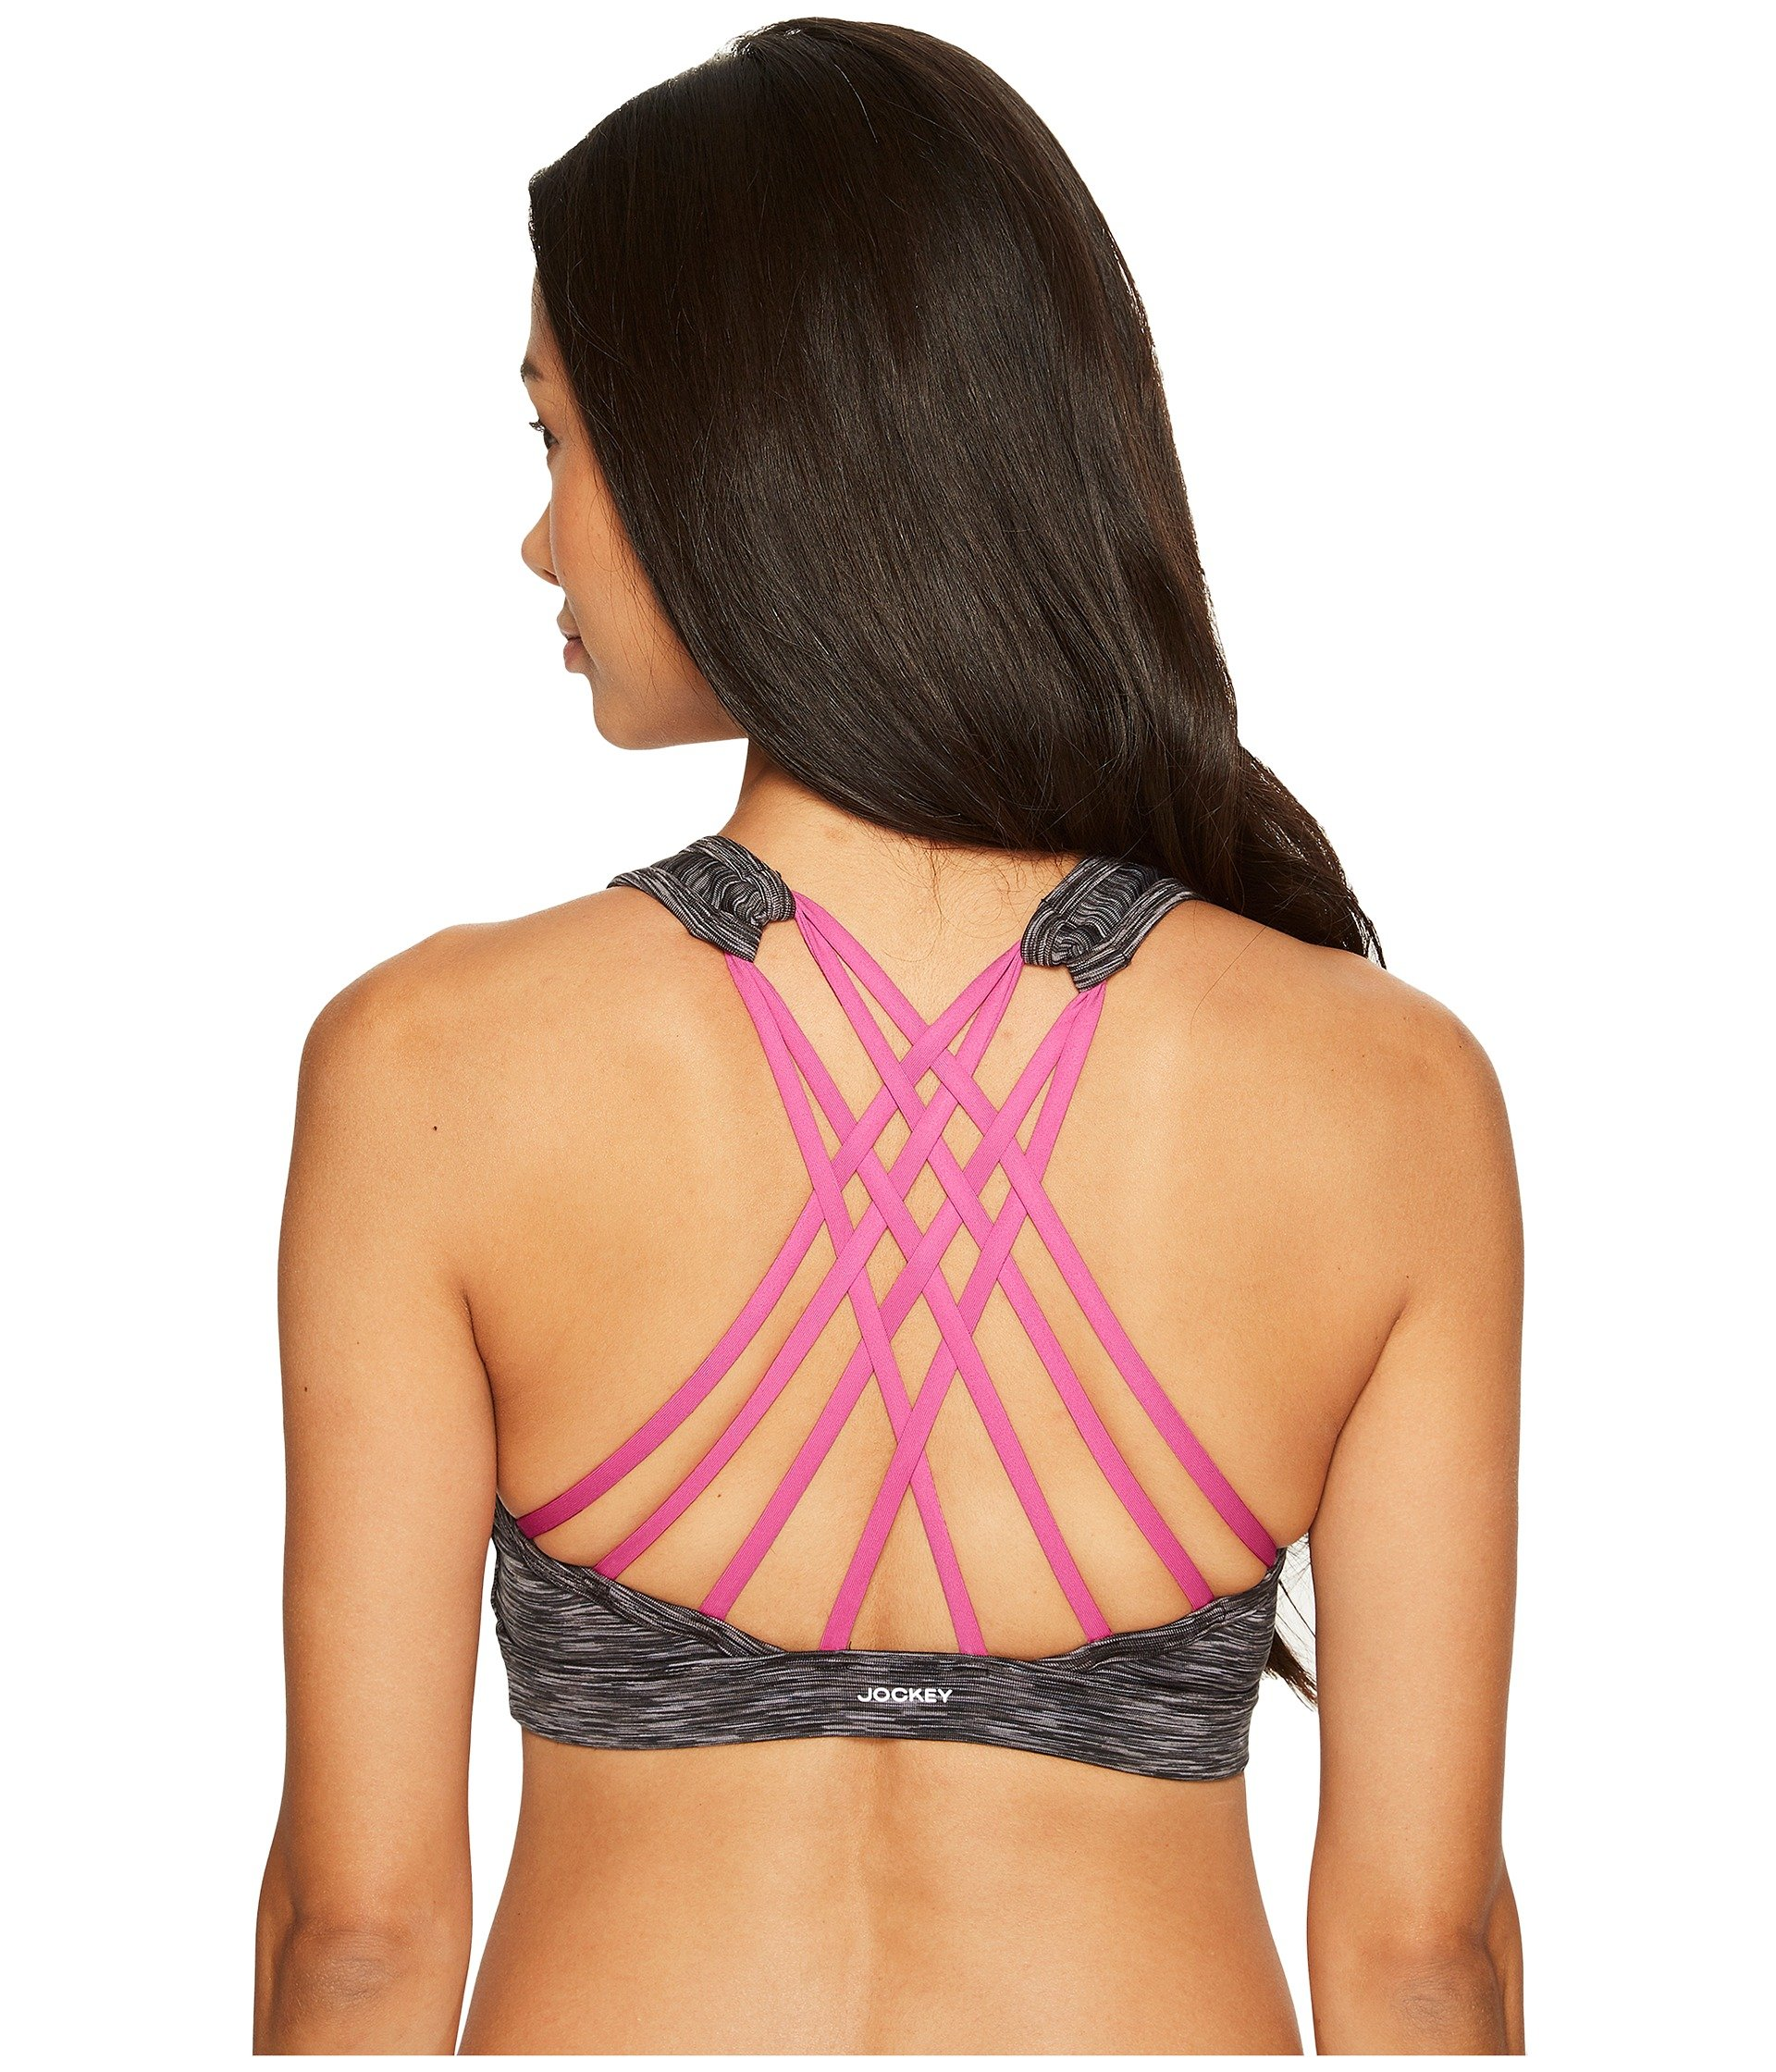 Brasier Jockey Active Crisscrossed Back Sports Bra  + Jockey en VeoyCompro.net